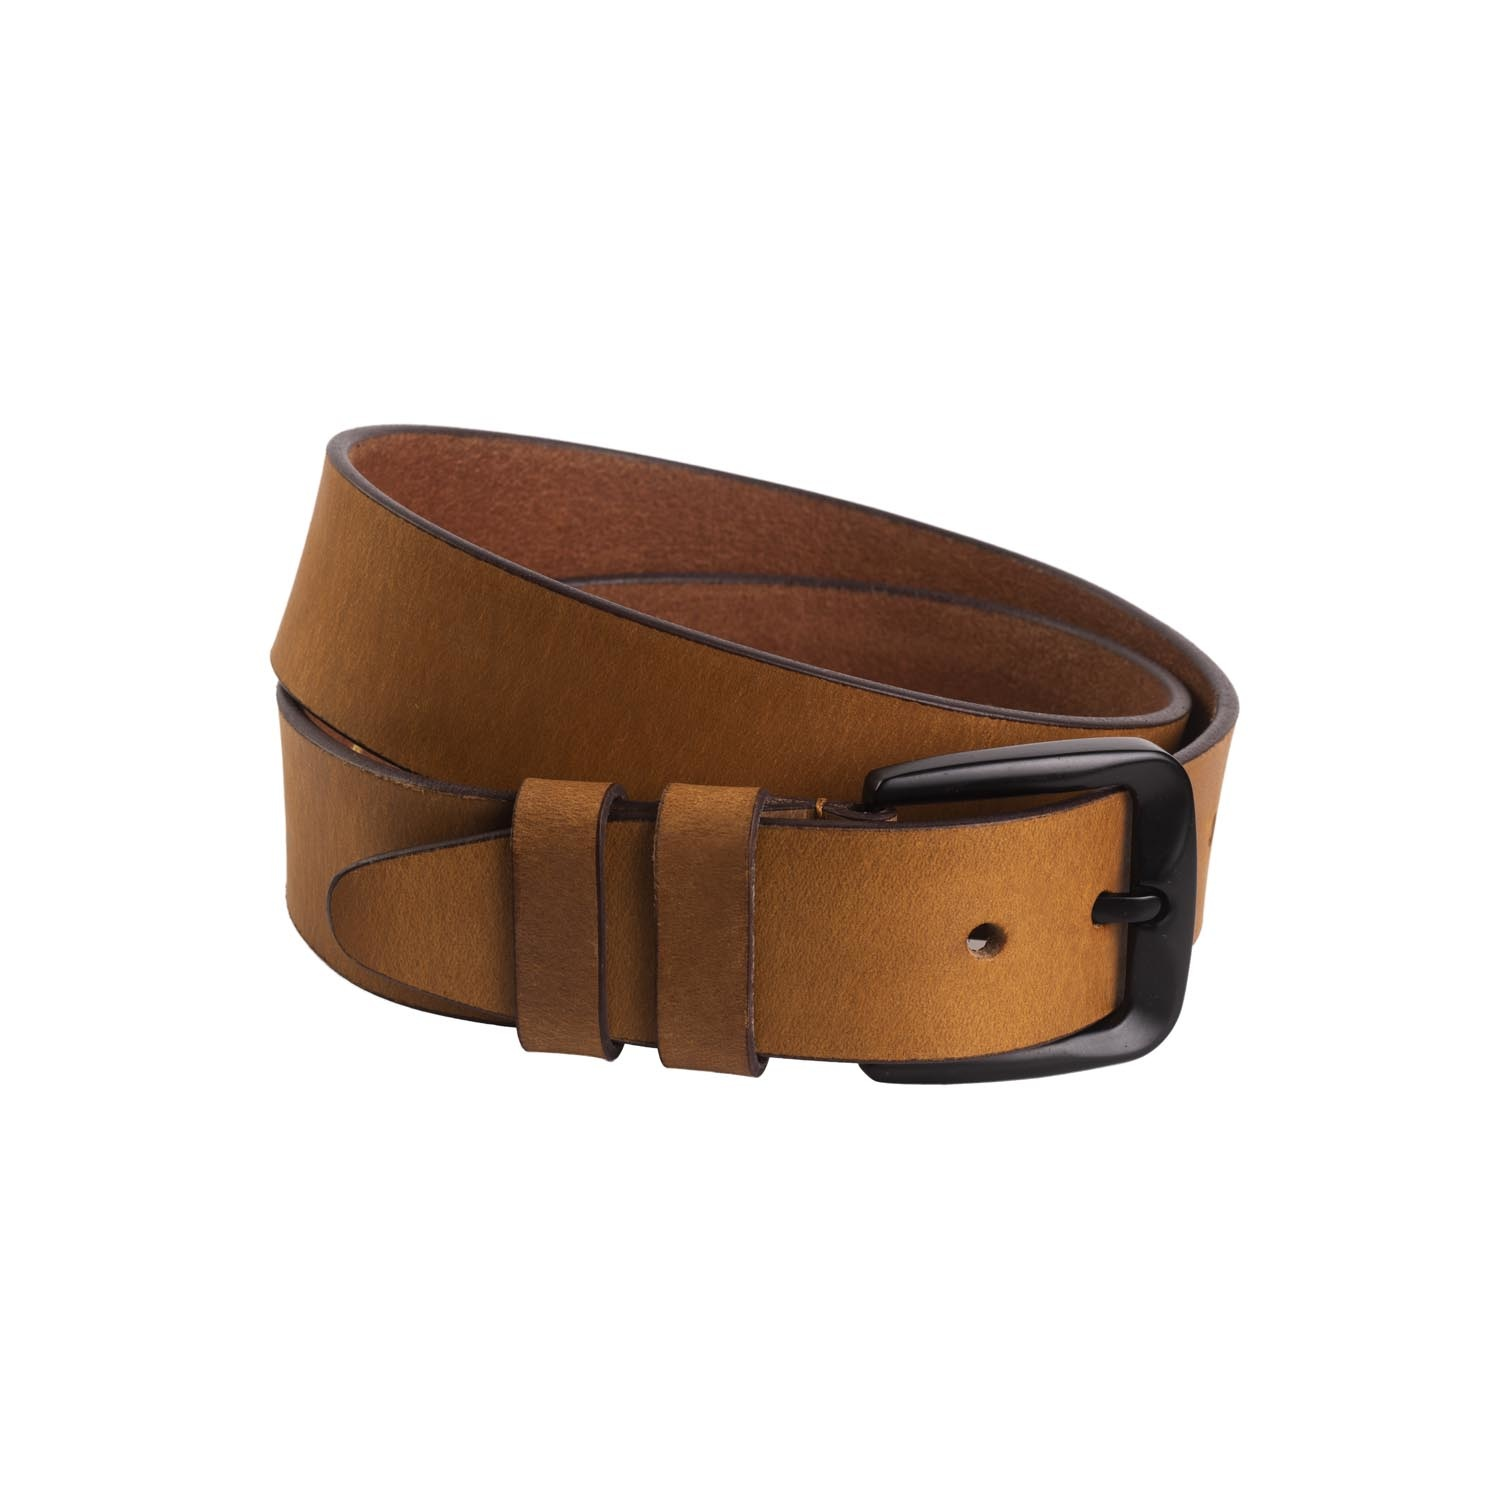 Chesterfield Chesterfield Allendale Leather Belt Cognac